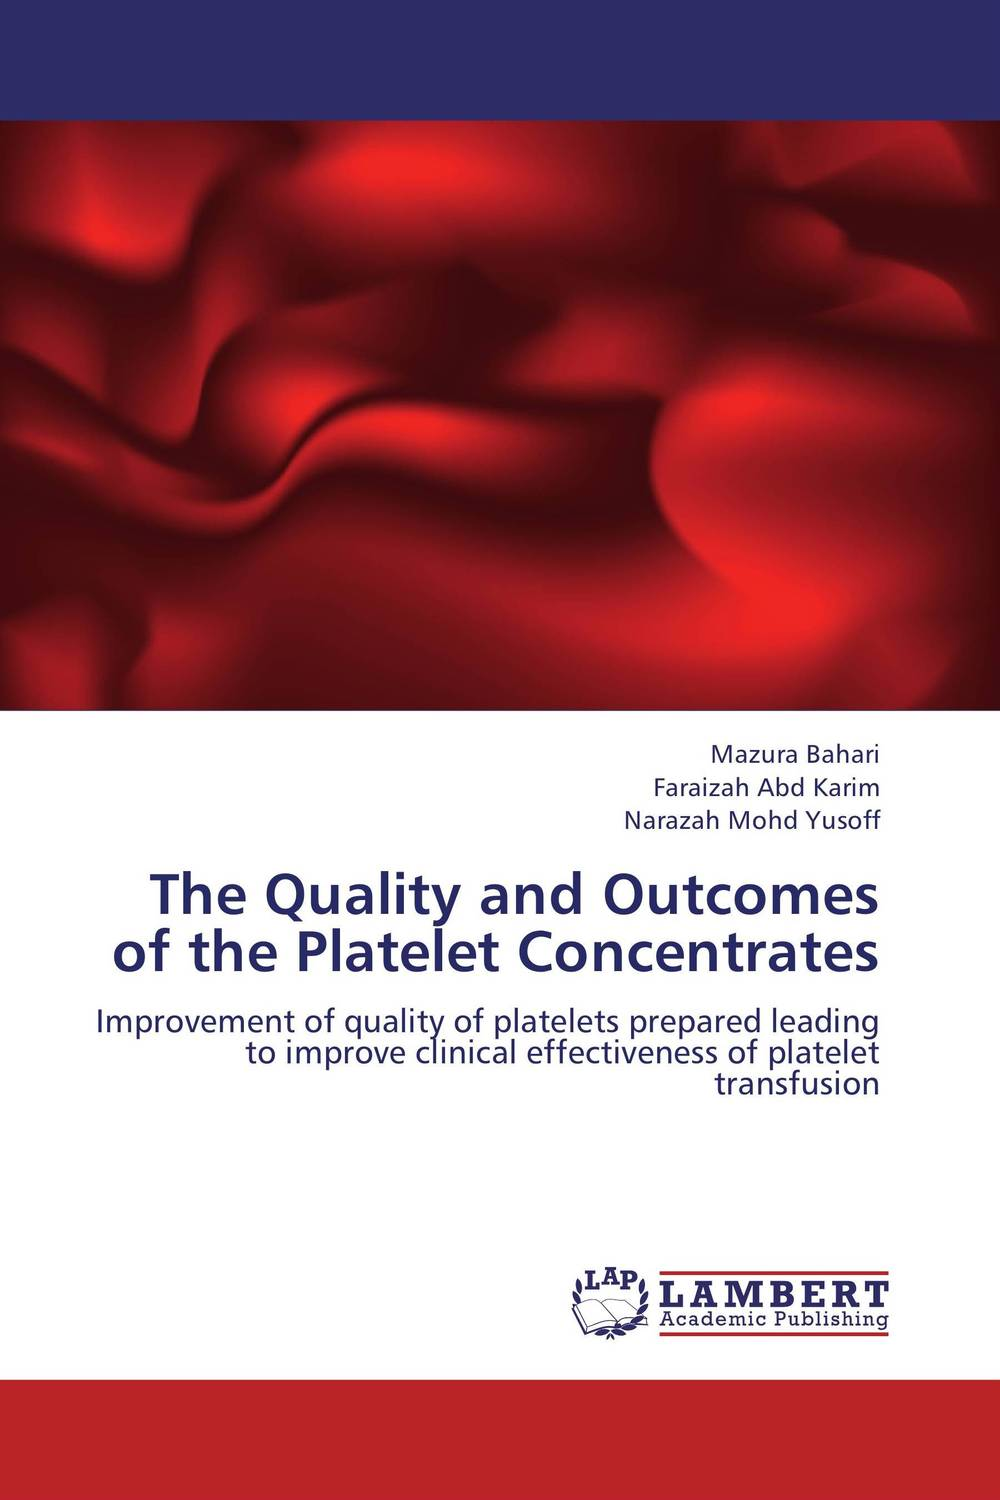 The Quality and Outcomes of the Platelet Concentrates